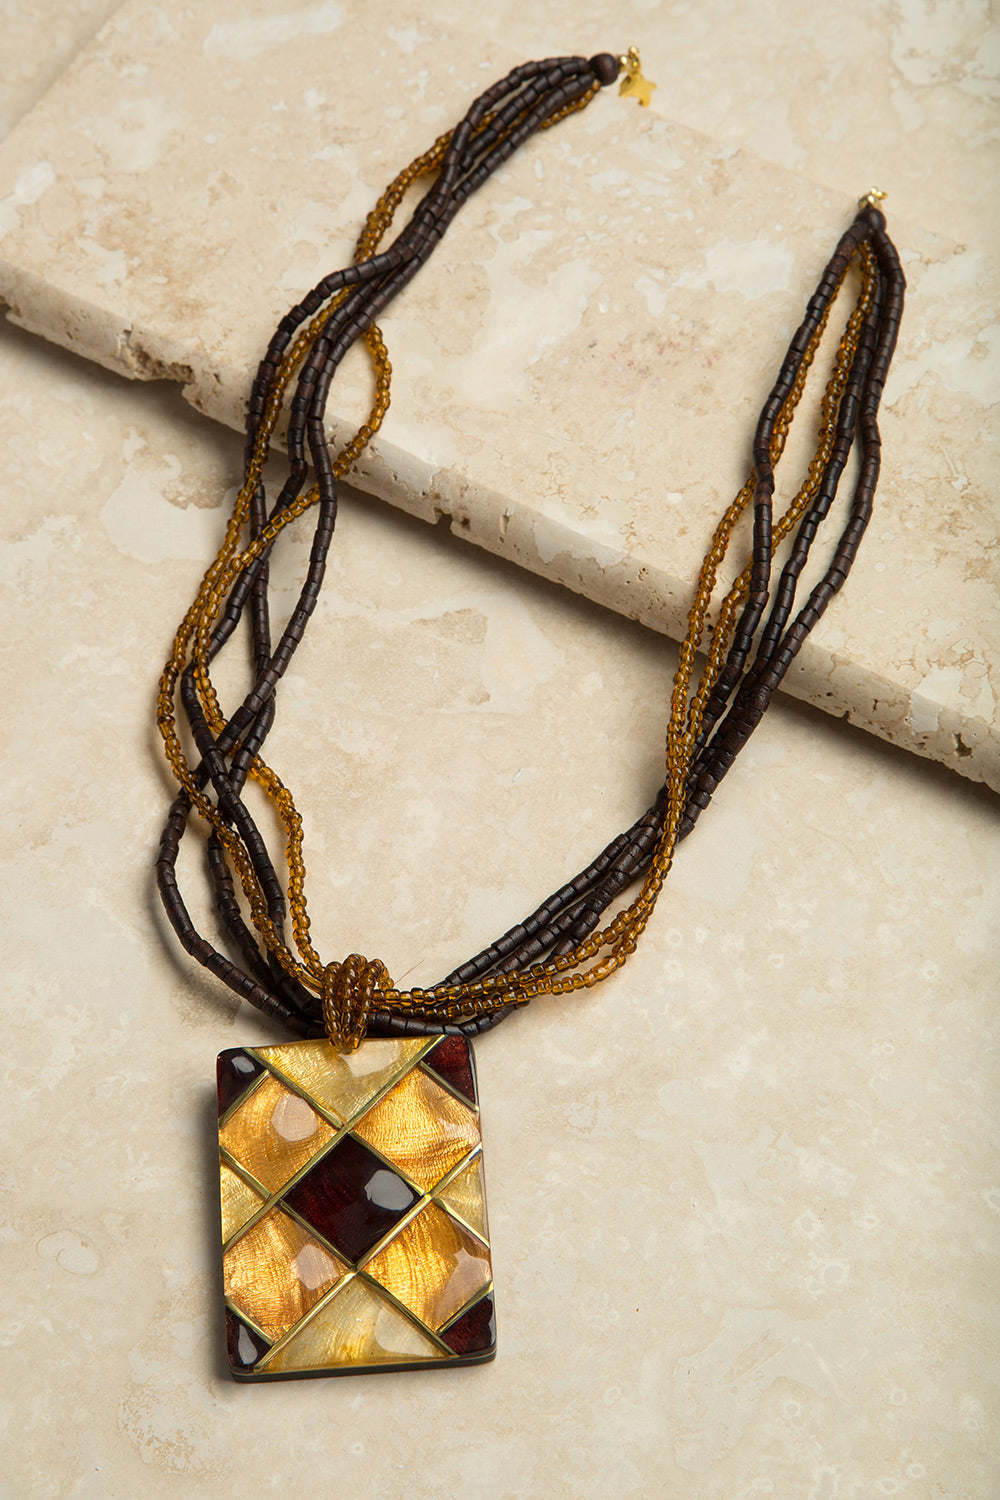 Type 3 Golden Glass Necklace